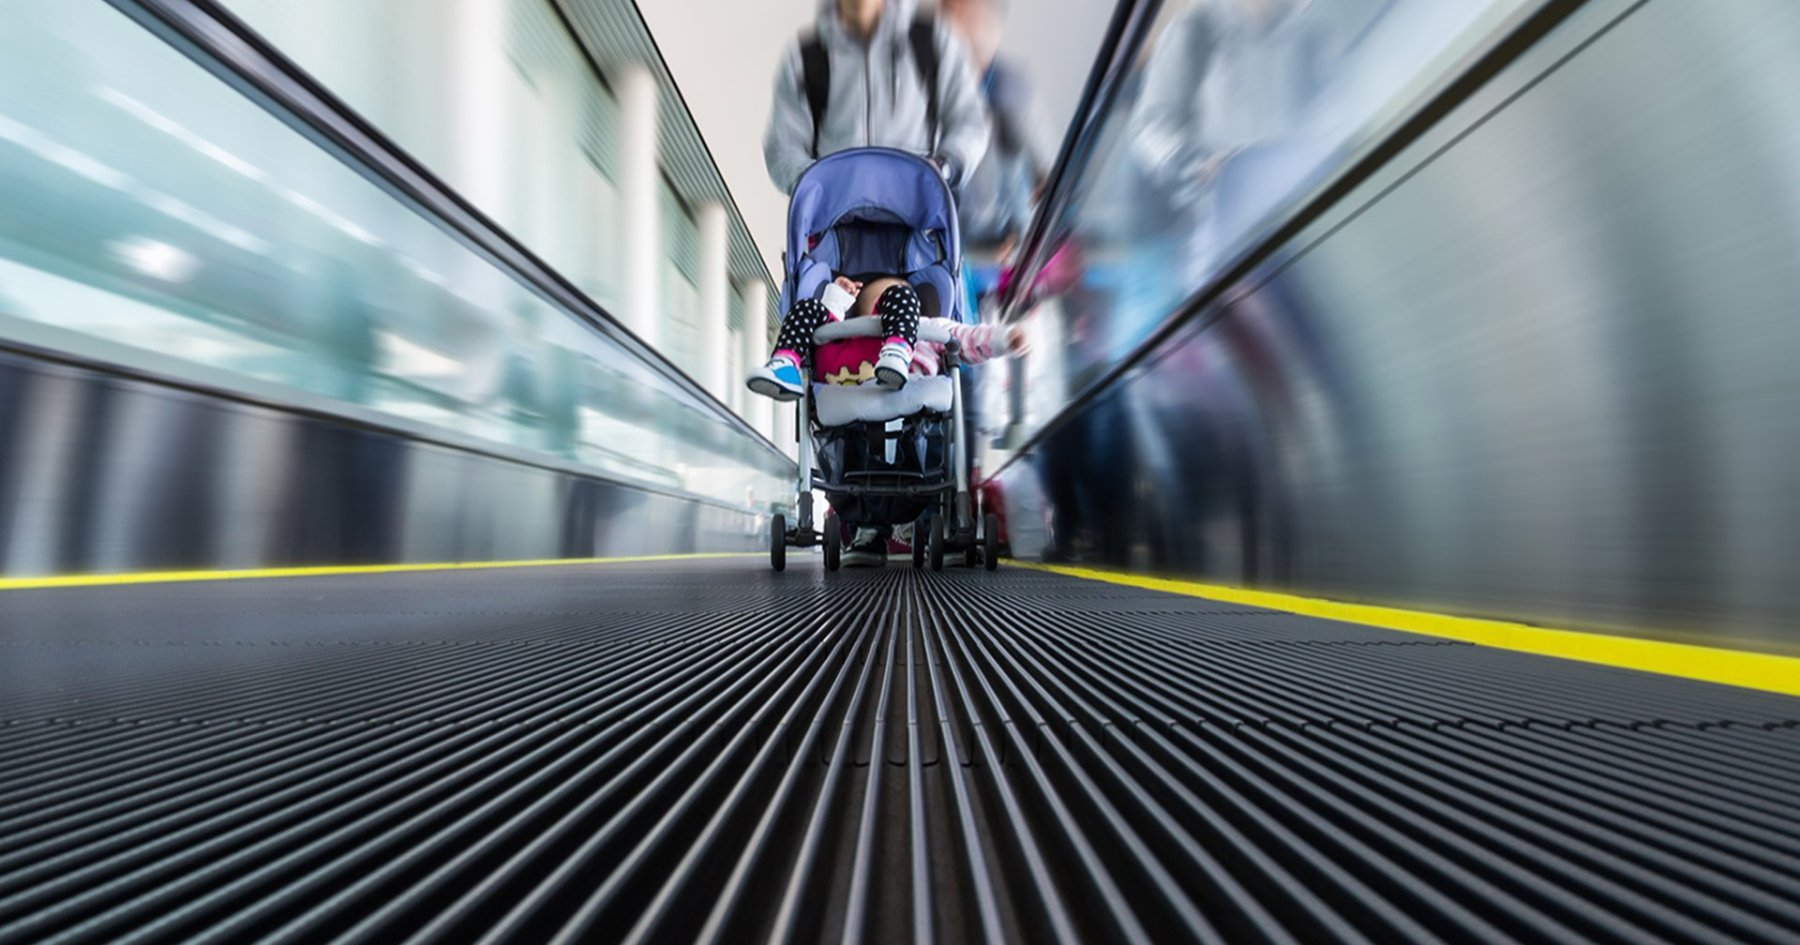 How to Do Plane Travel With a Baby (Without Wanting to Die)